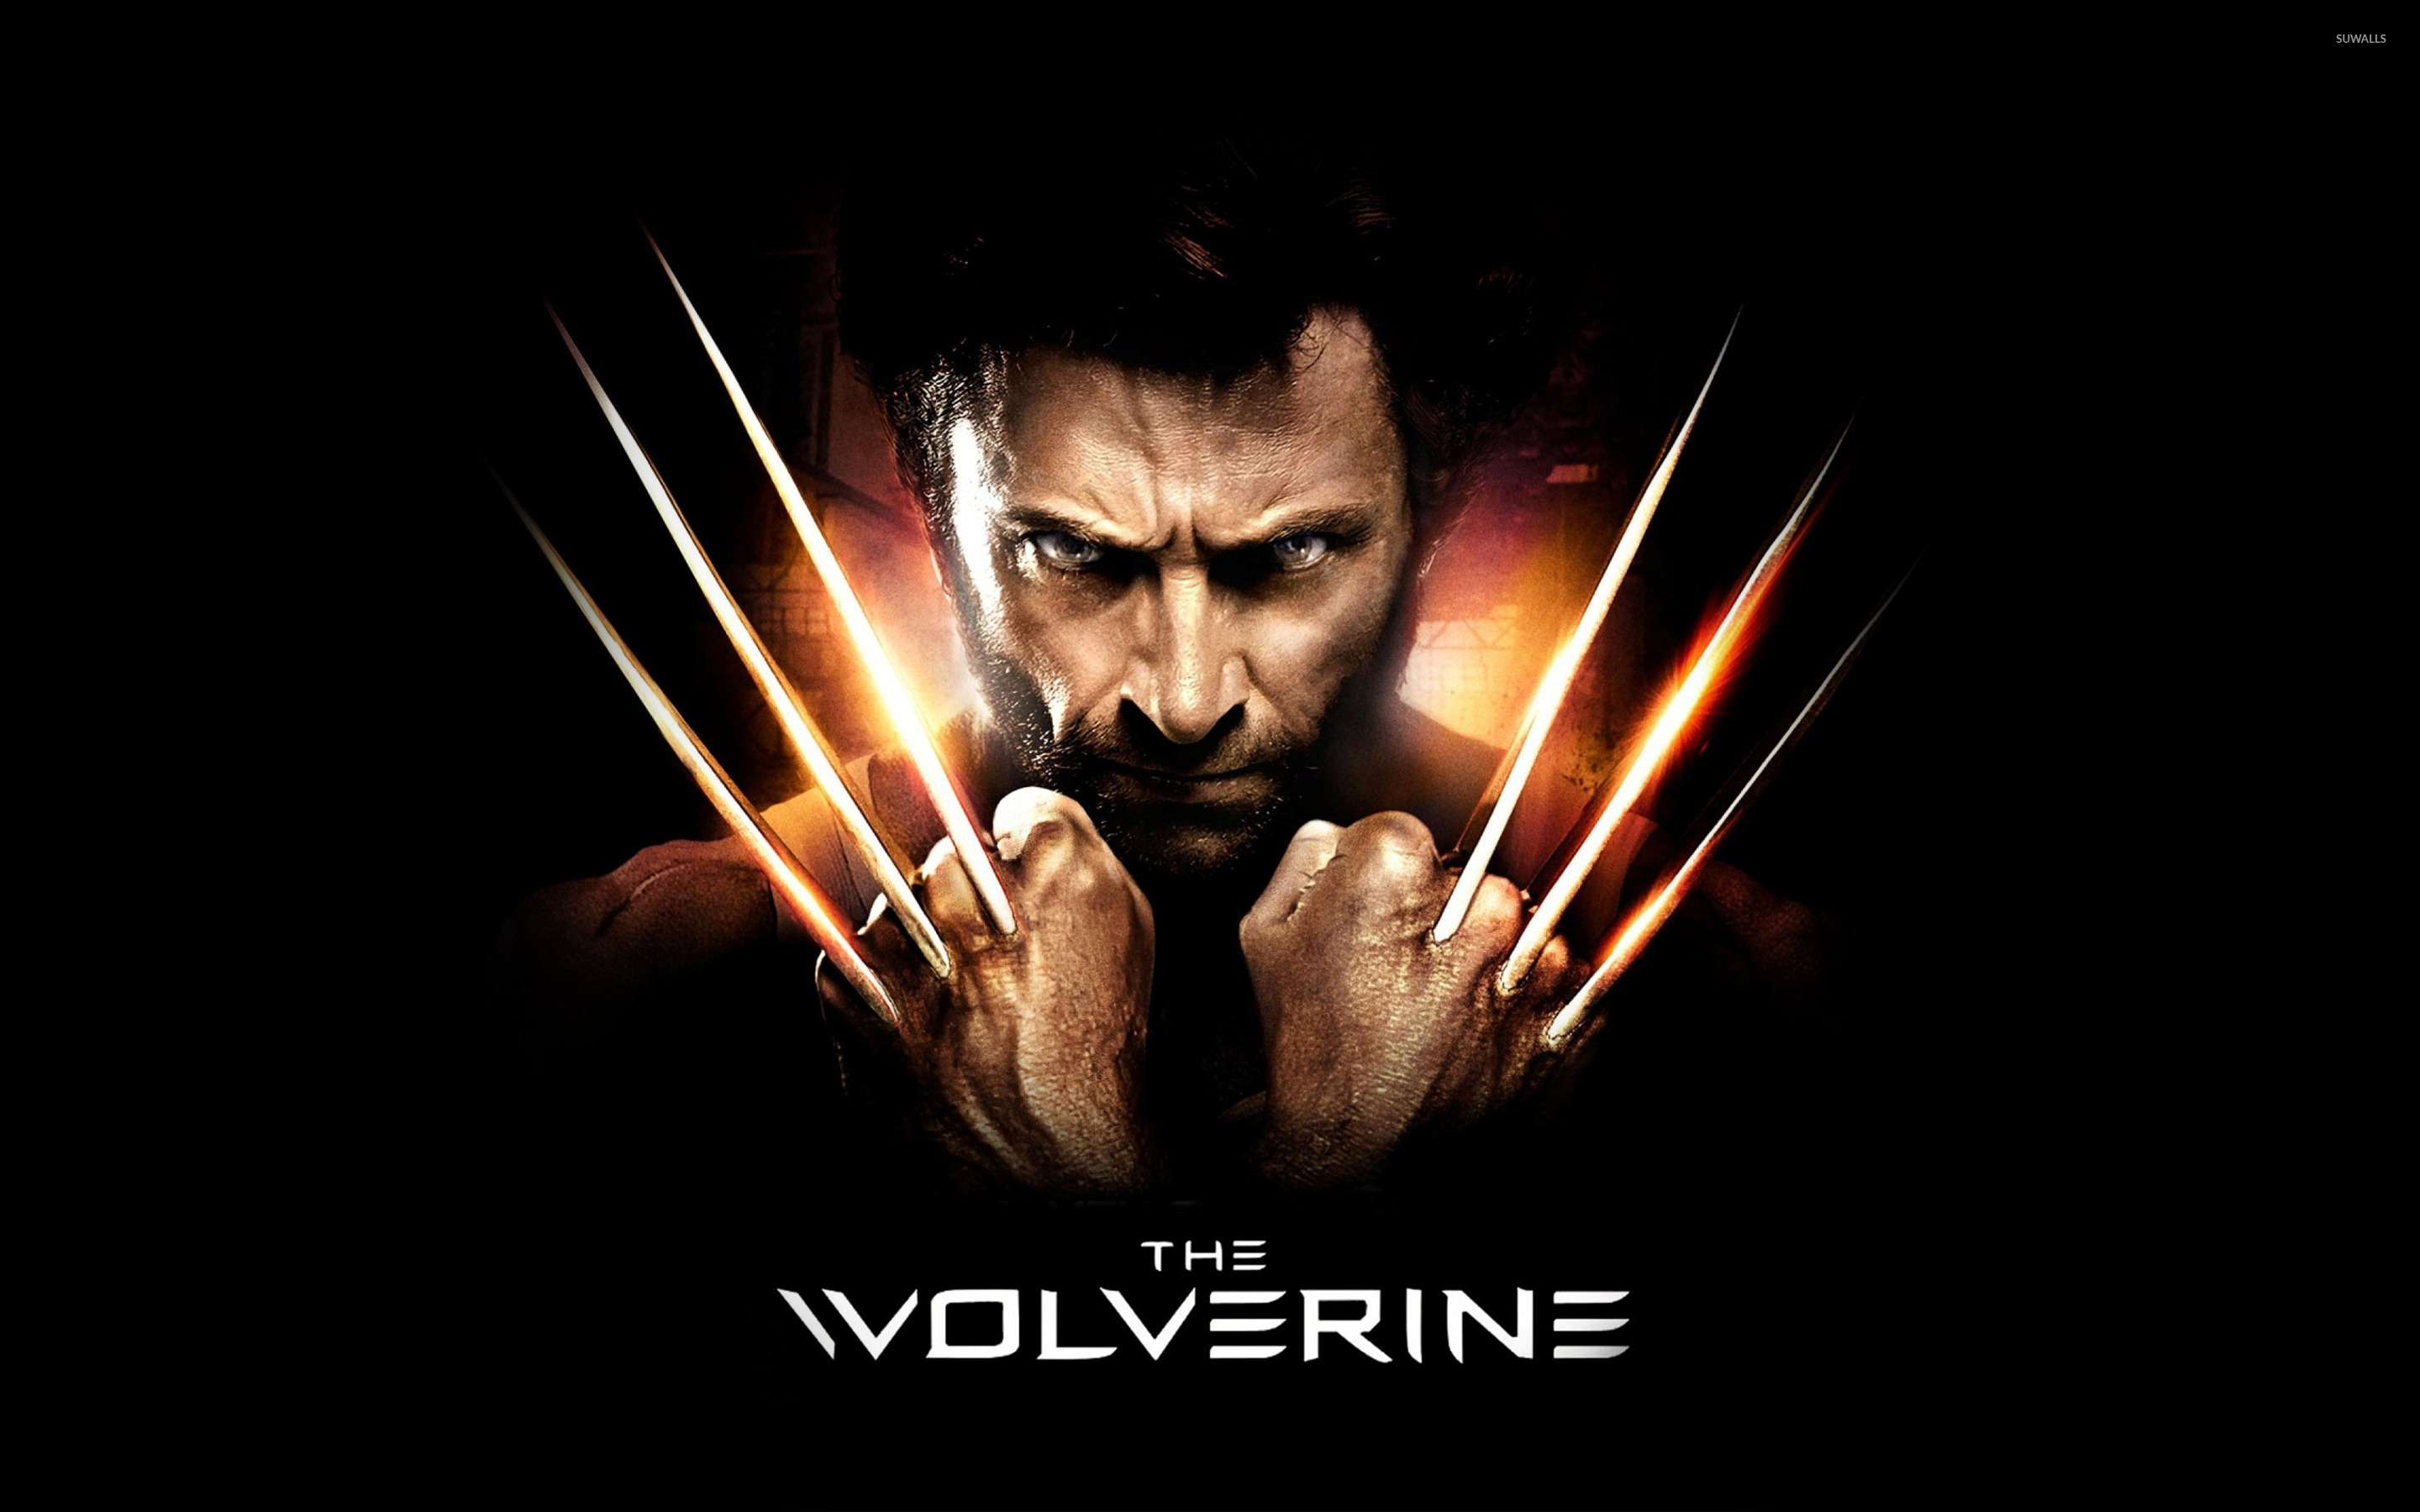 Logan the wolverine wallpaper movie wallpapers 22525 logan the wolverine wallpaper voltagebd Images